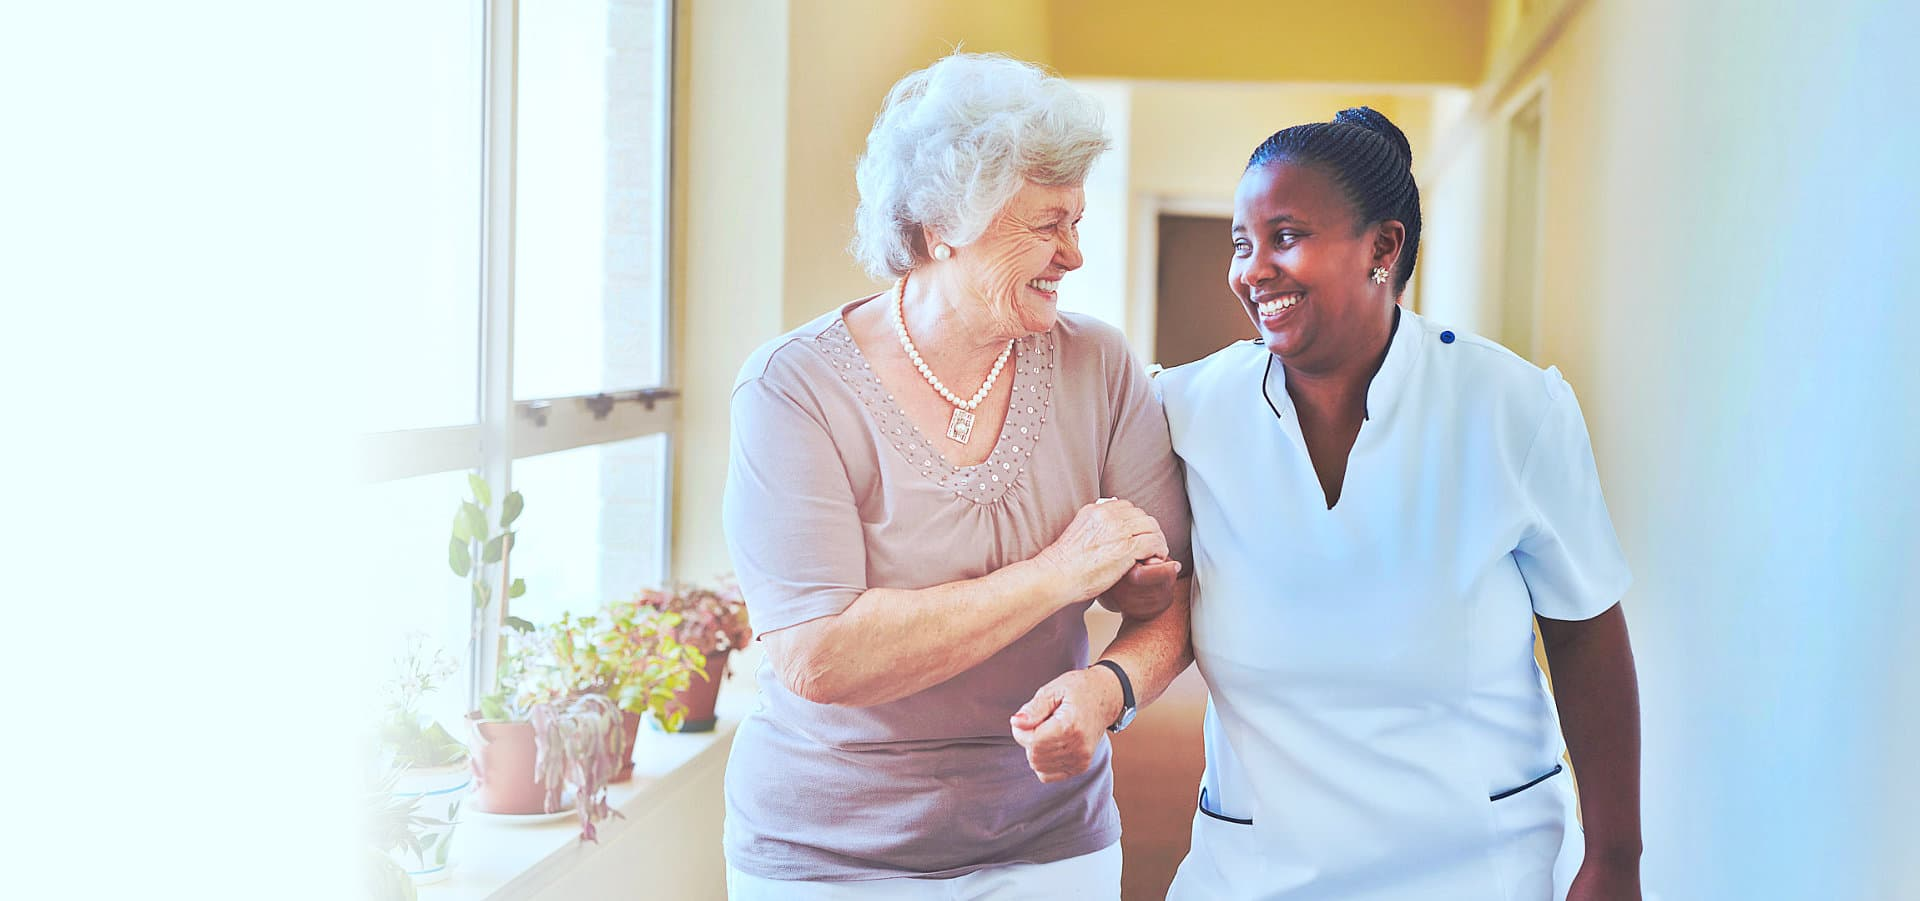 happy elderly woman assisted by her caregiver